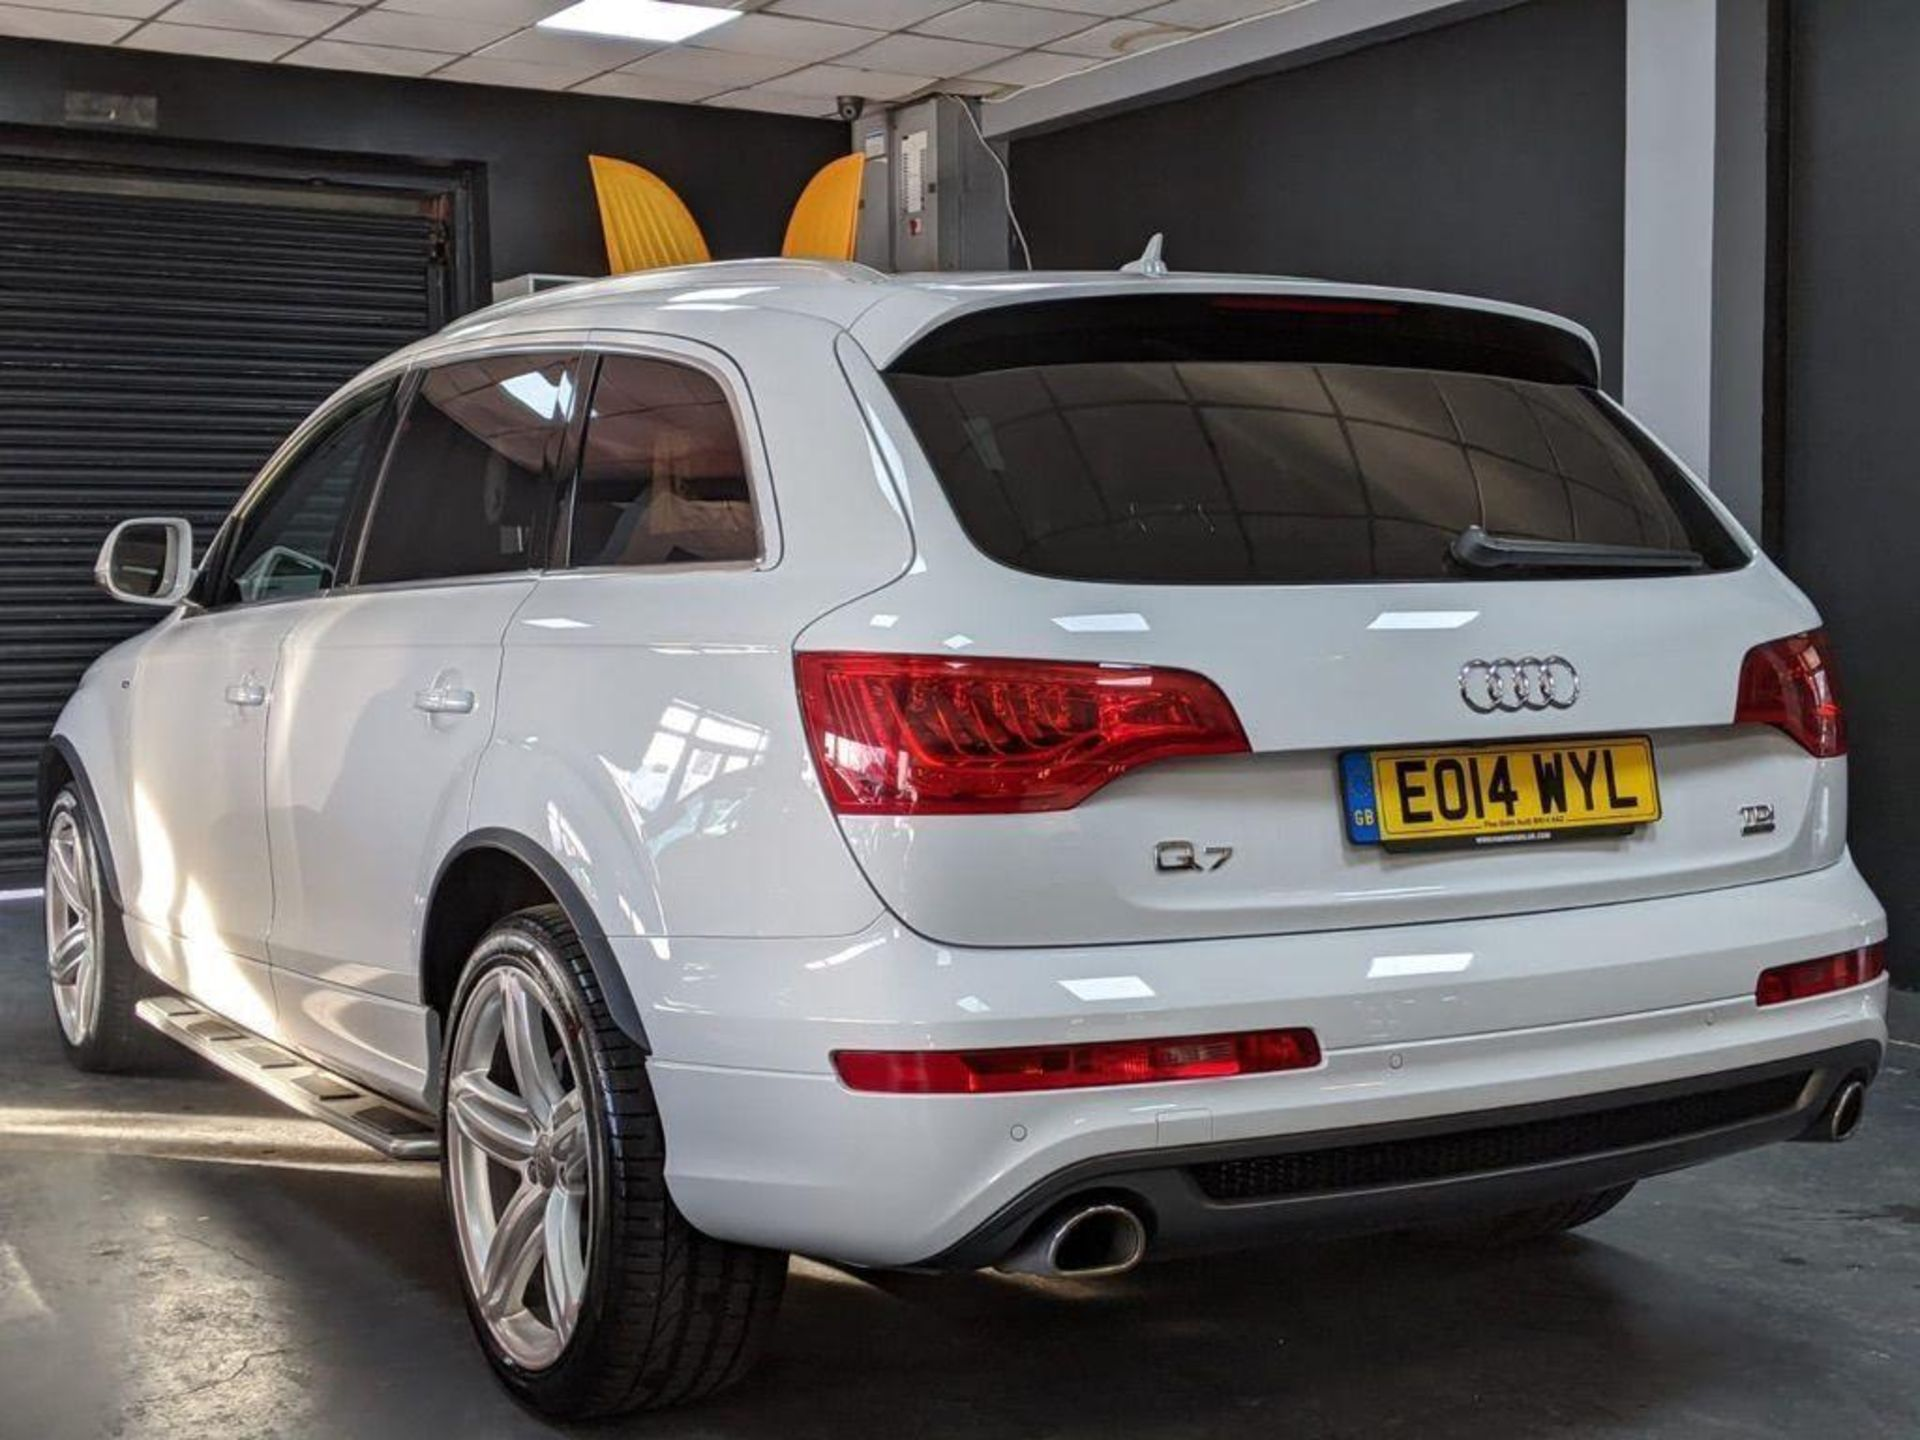 2014/14 REG AUDI Q7 S LINE + TDI QUATTRO 3.0 DIESEL AUTO 245 PS 7 SEAT, SHOWING 3 FORMER KEEPERS - Image 3 of 36